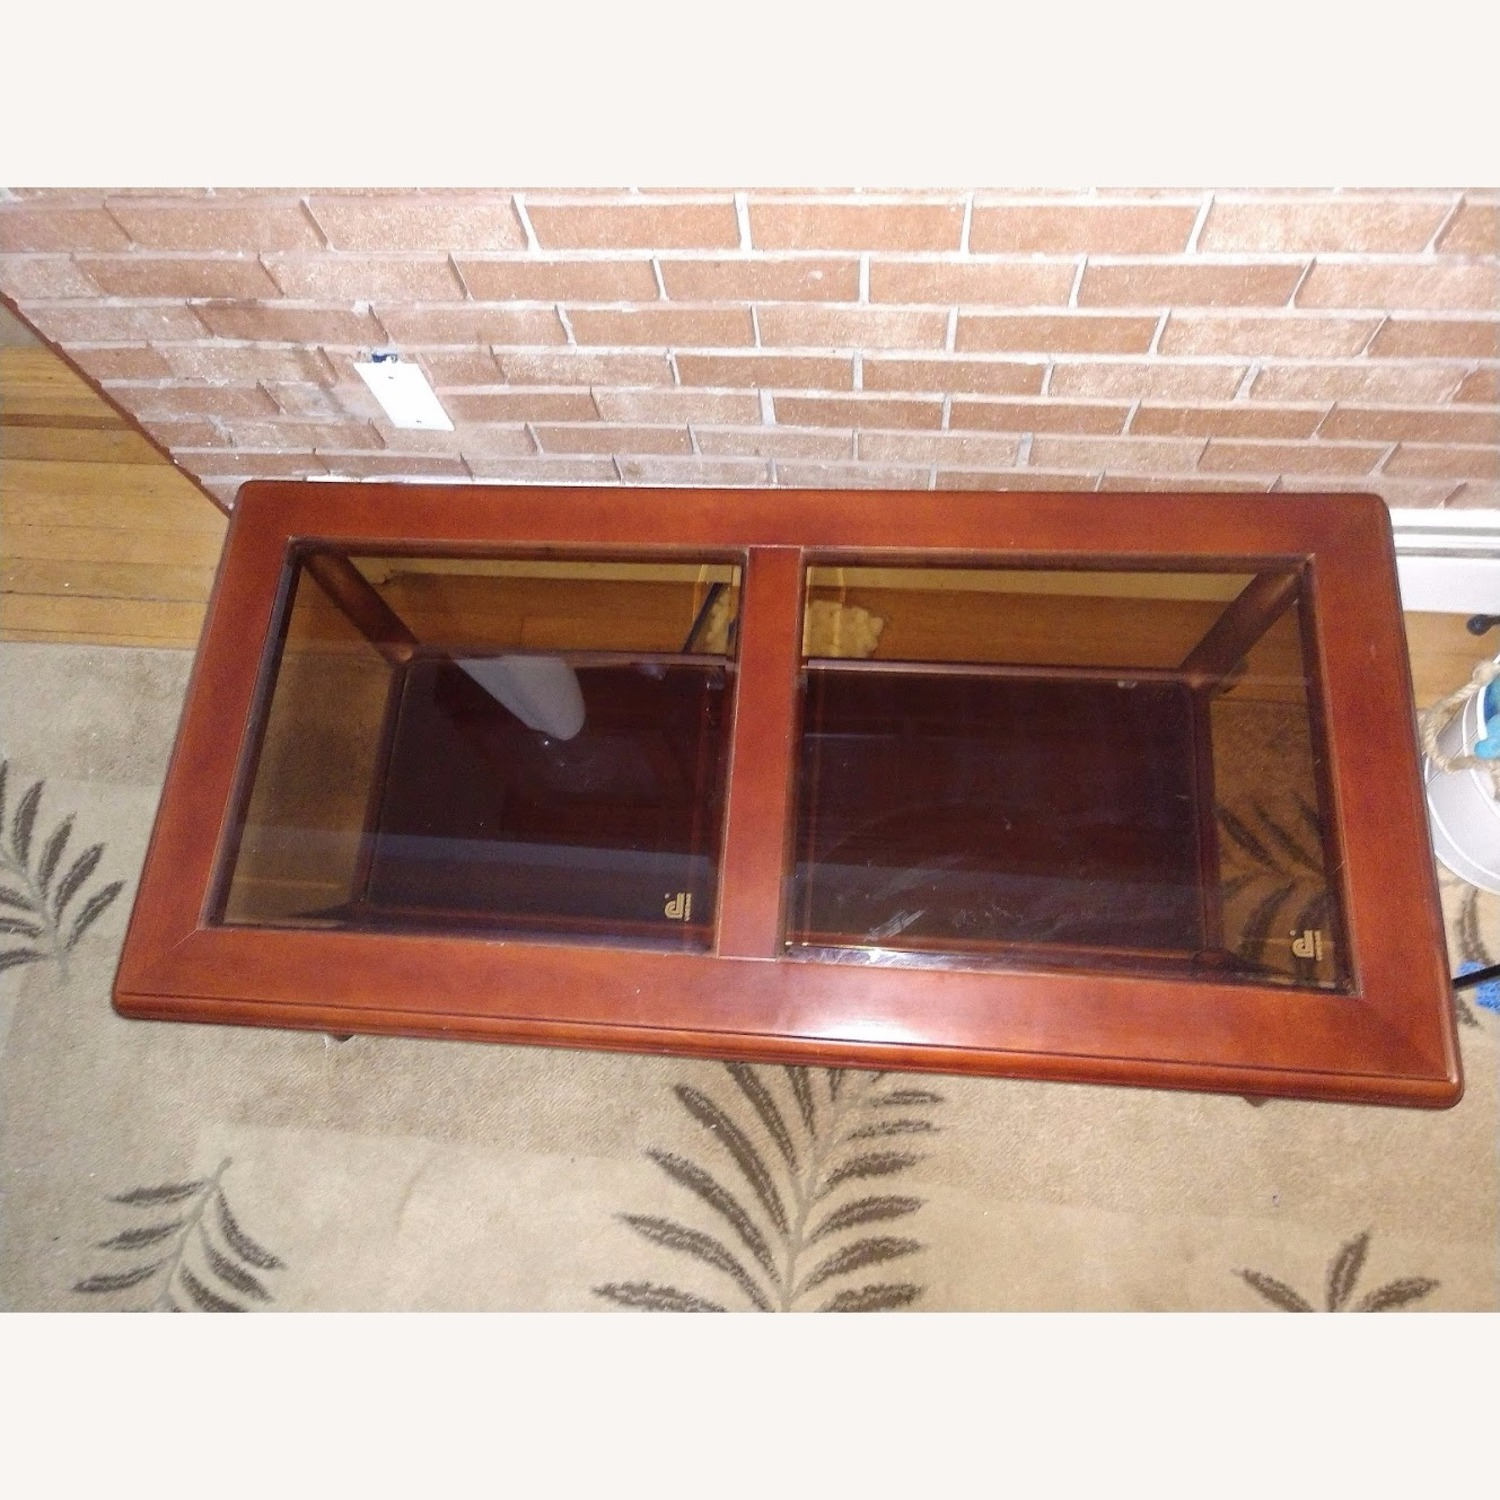 Solid Wood Coffee Table with Glass Top - image-4